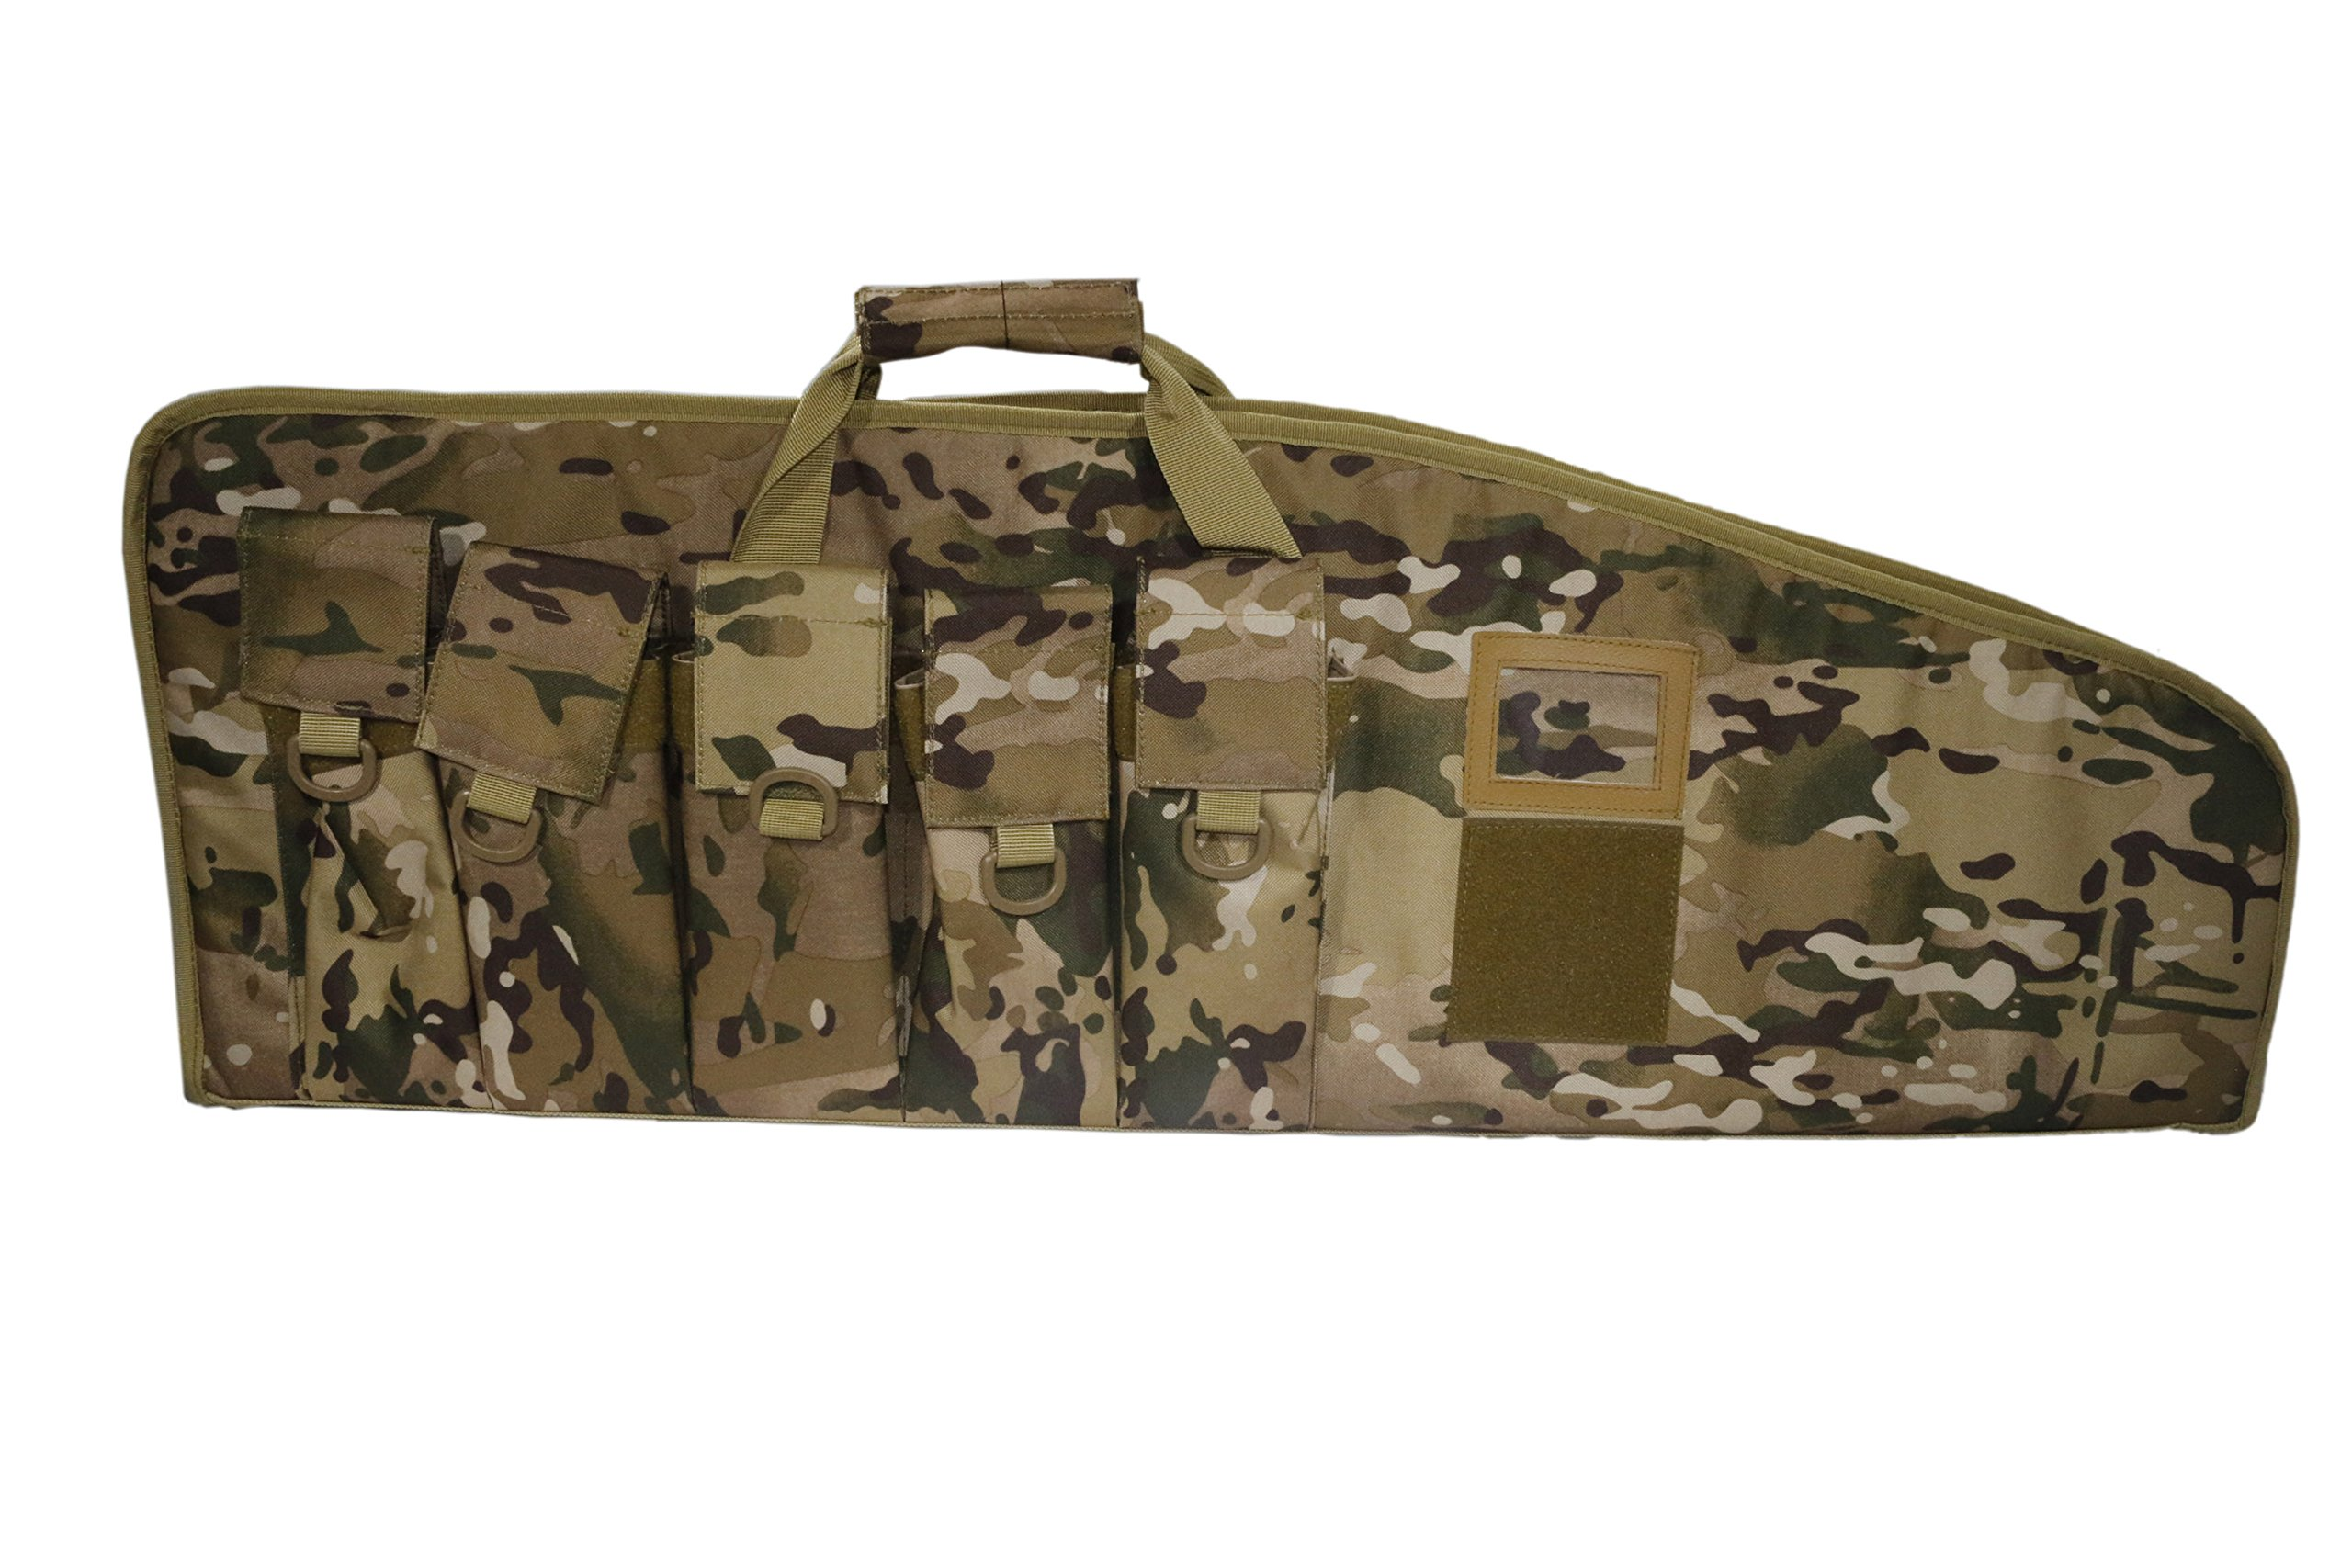 ARMYCAMOUSA Rifle Bag Outdoor Tactical Carbine Cases Water dust Resistant Long Gun Case Bag with Five Magazine Pouches for Hunting Shooting Range Sports Storage and Transport (38'' Multicam) by ARMYCAMO